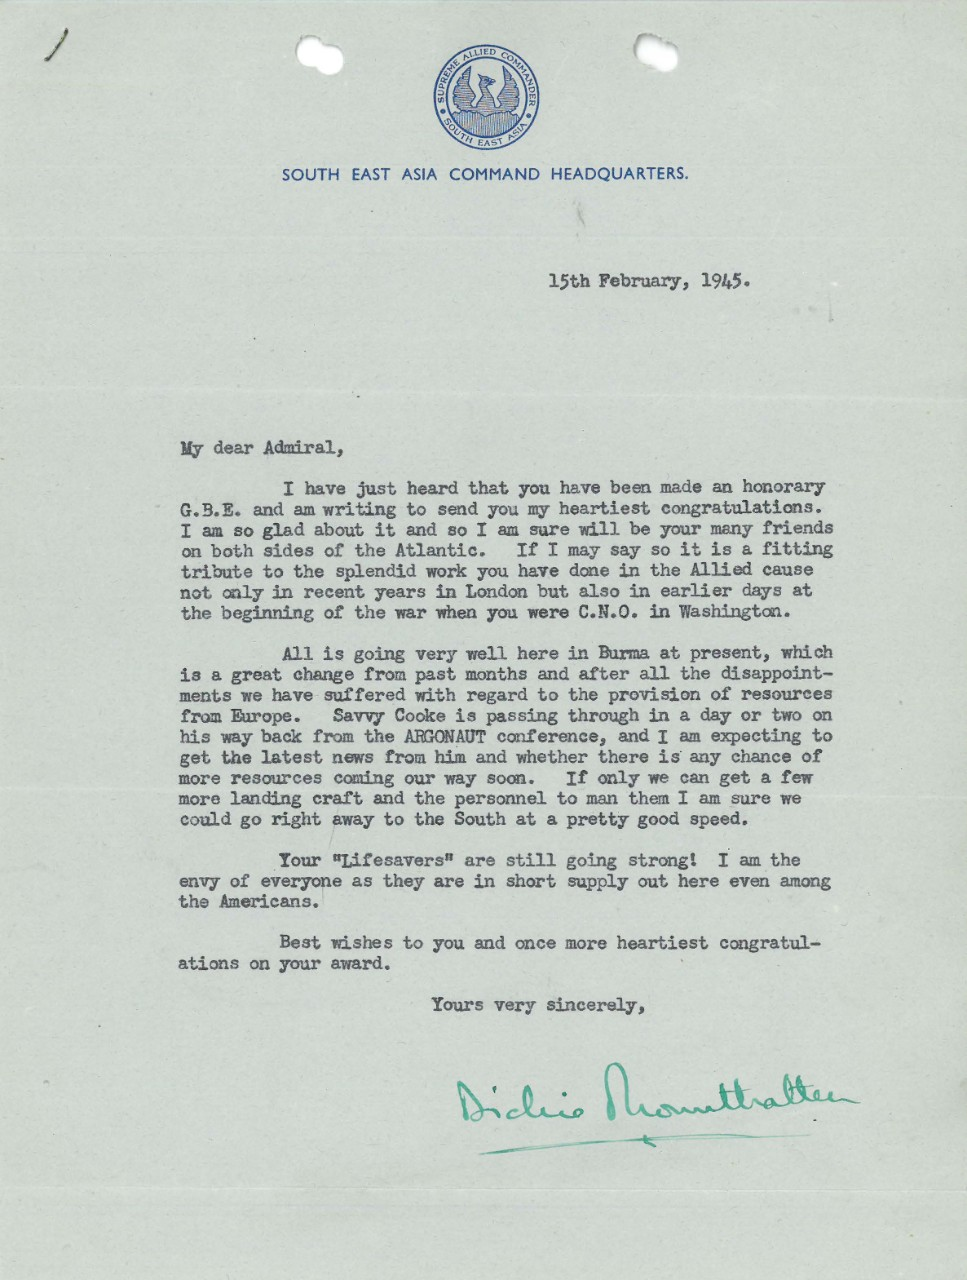 Letter from Lord Mountbatten to Admiral Stark dated Feb. 15, 1945